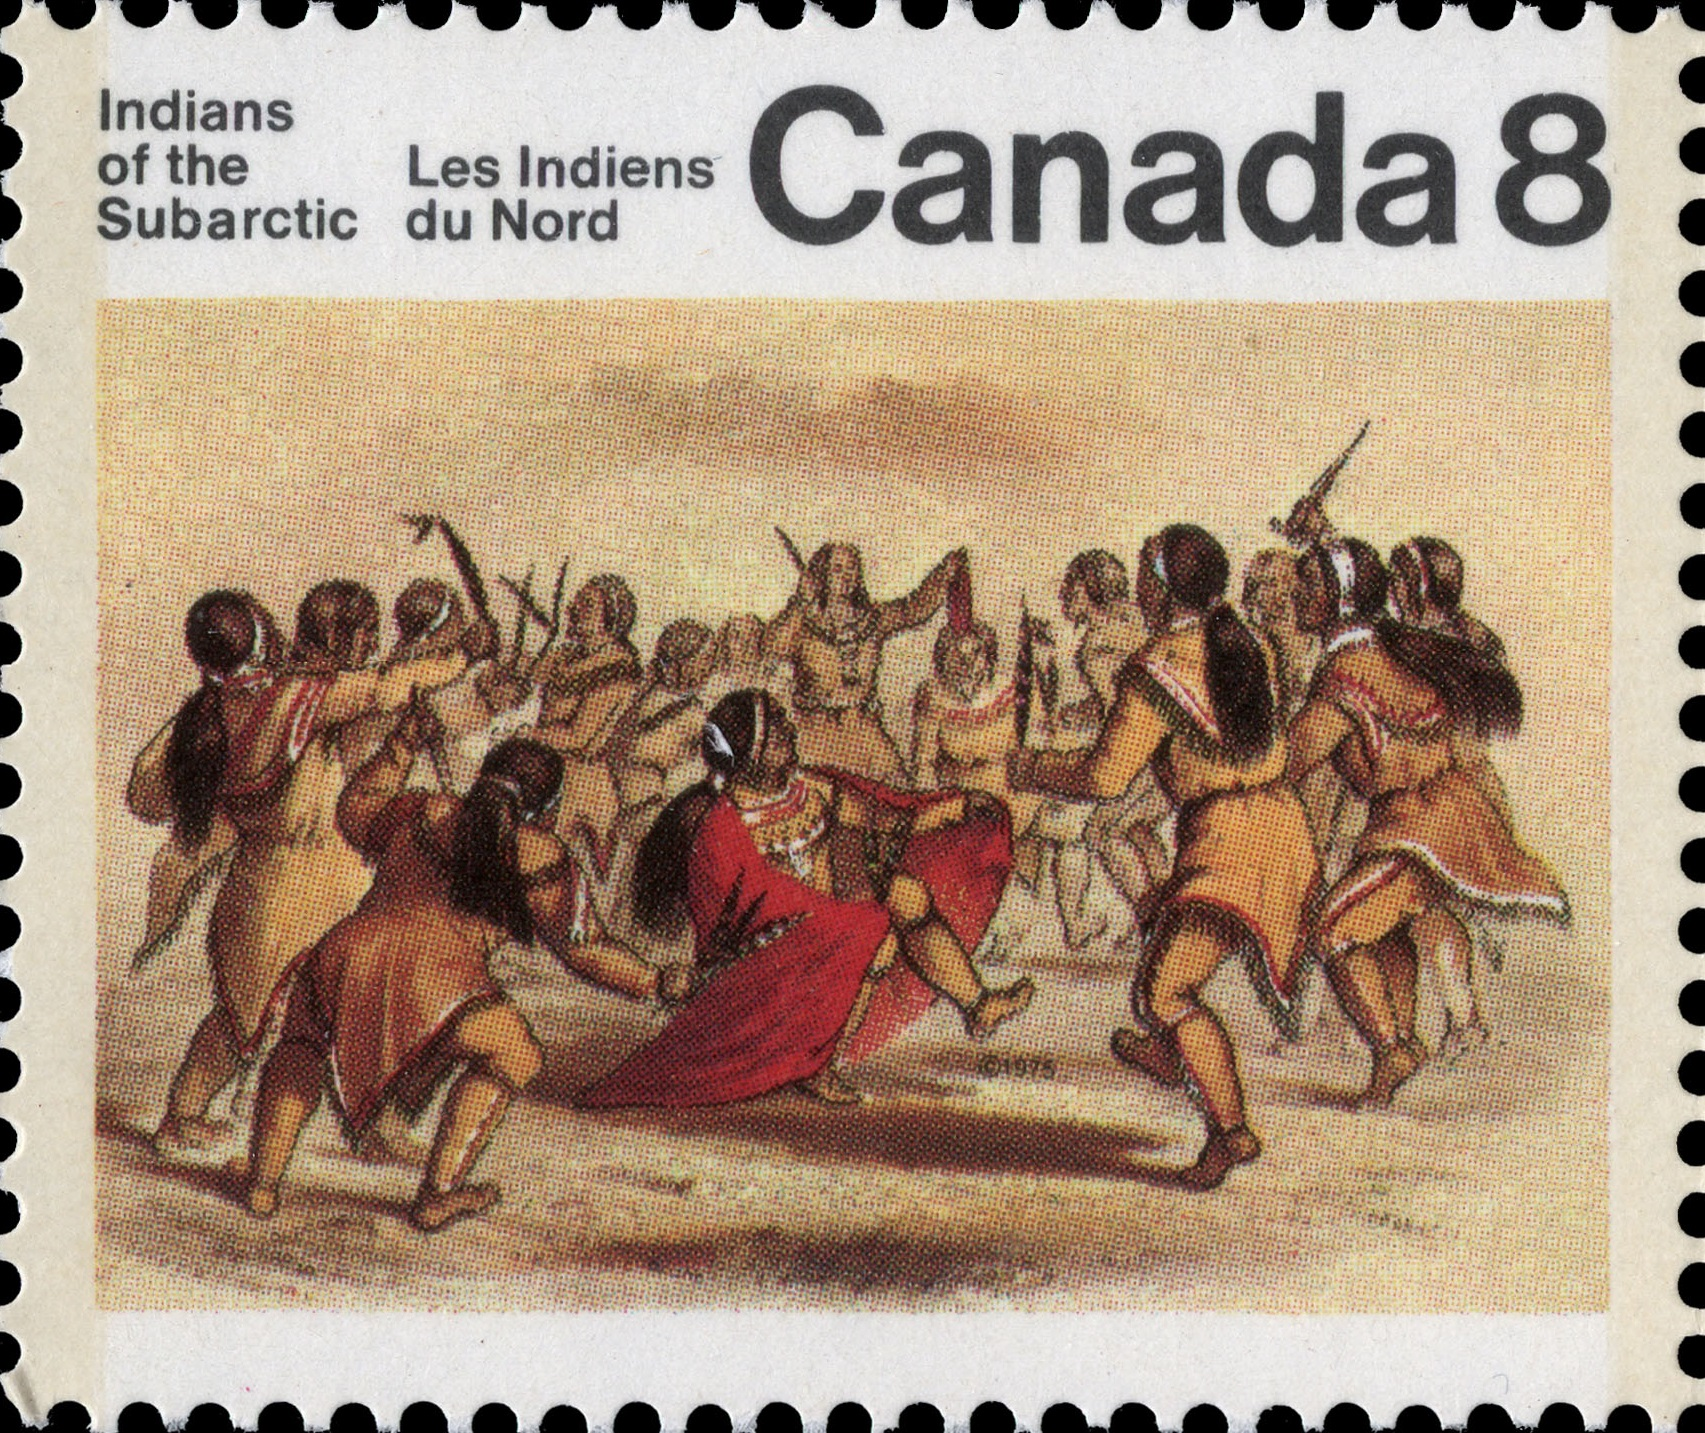 Dance of the Kutcha-Kutchin Canada Postage Stamp | Indians of Canada, Indians of the Subarctic